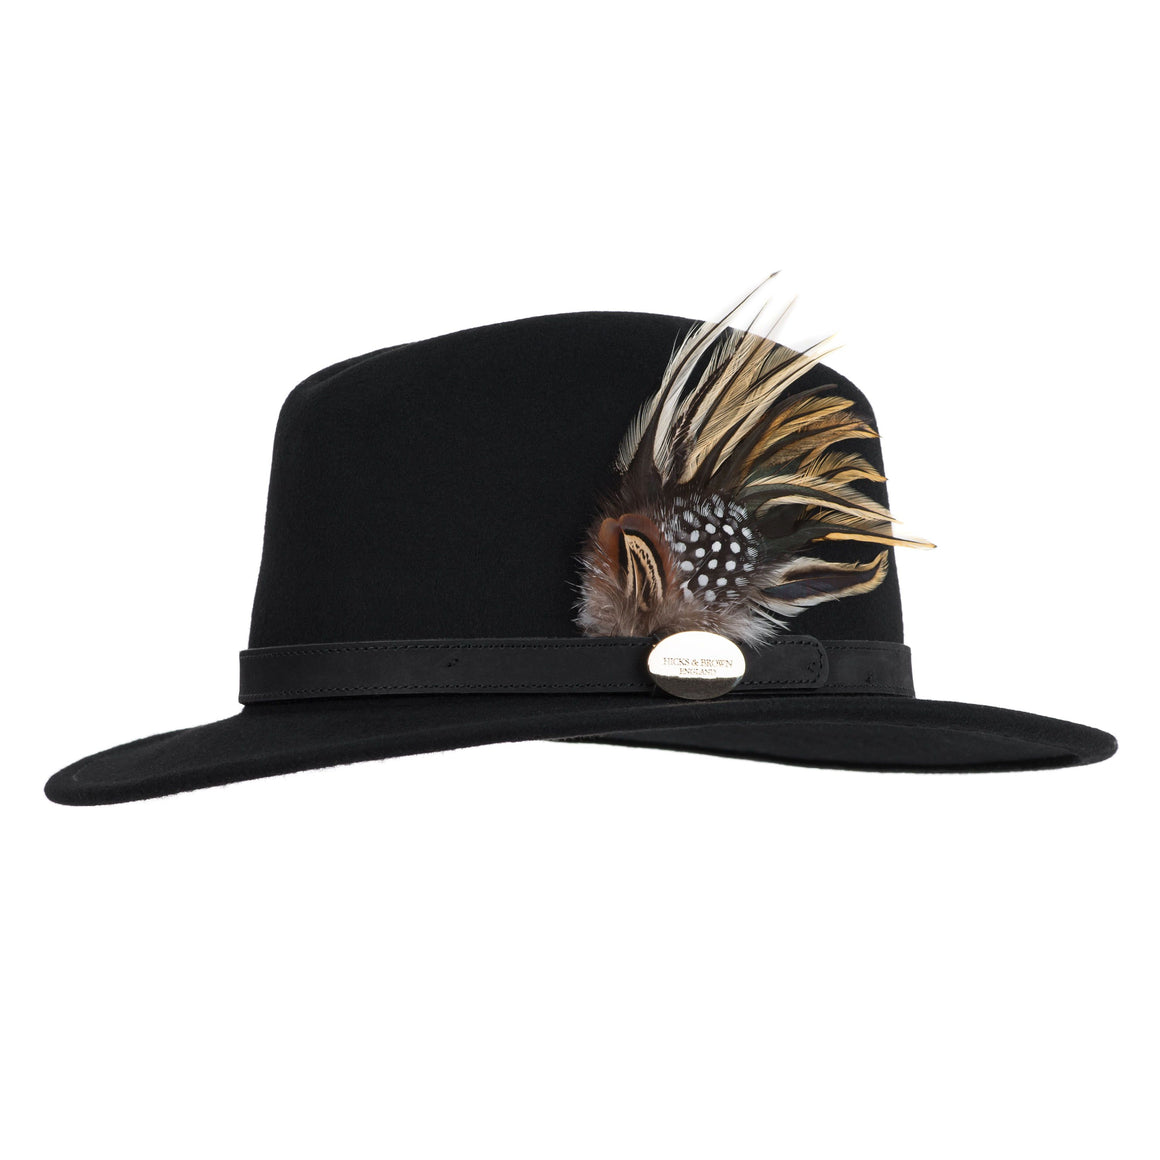 Hicks & Brown 'The Suffolk' Fedora in Black (Guinea and Pheasant Feather)